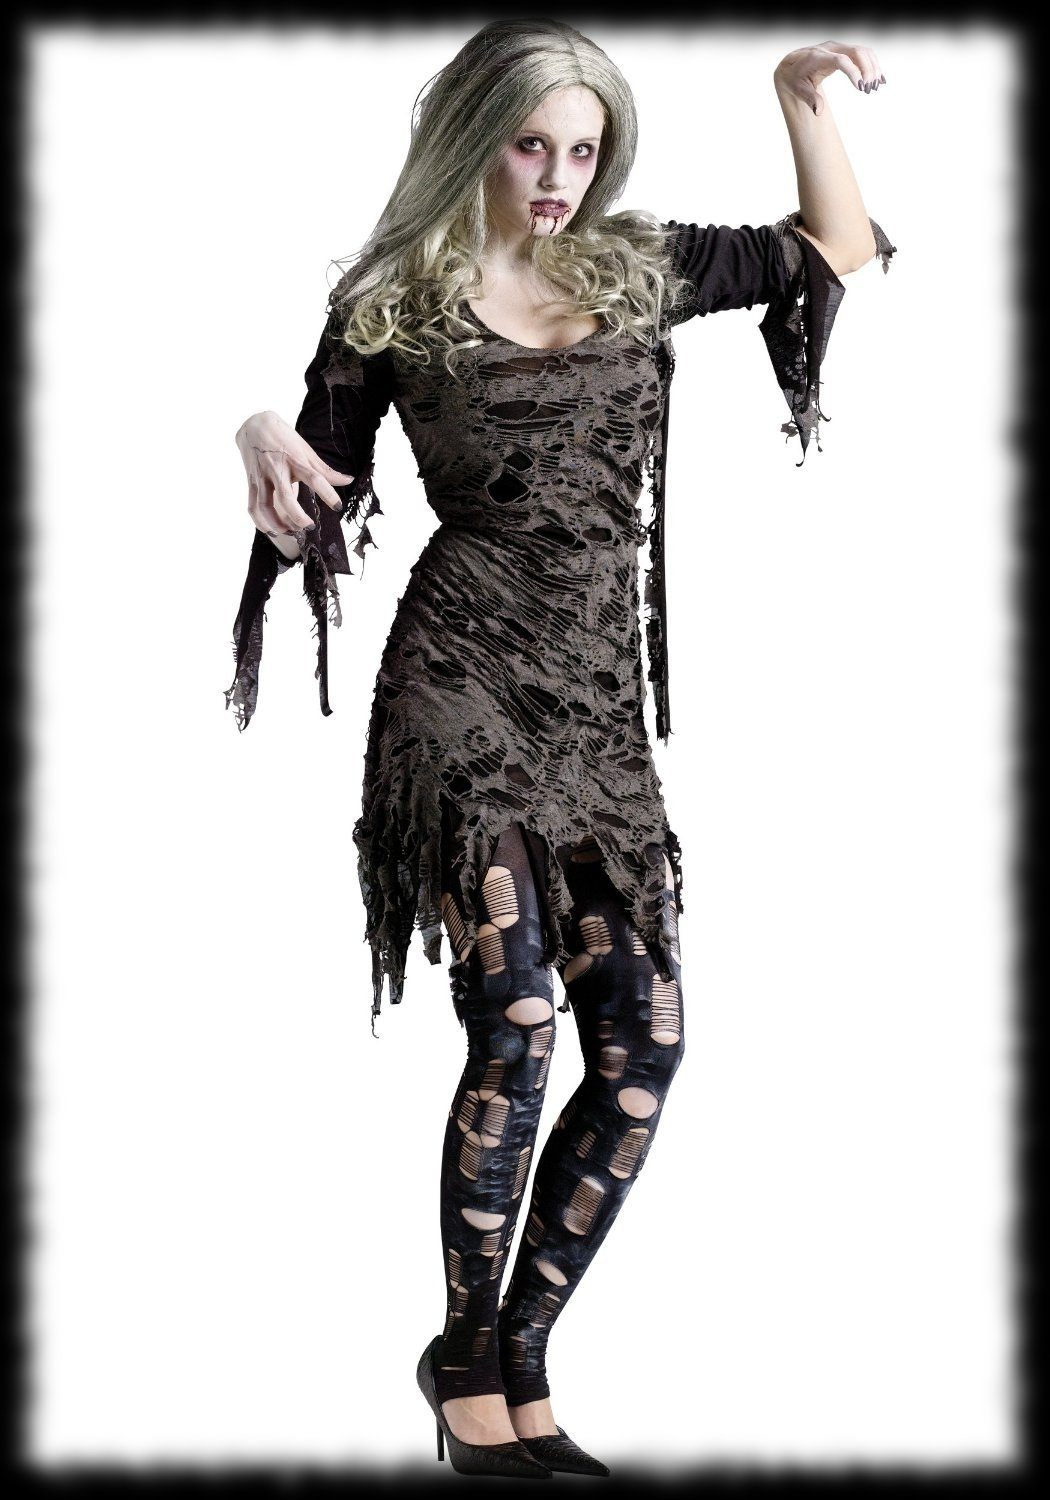 10 Amazing Zombie Costume Ideas For Girls zombie party ideas for halloween braiiiiiinnnnnsssss